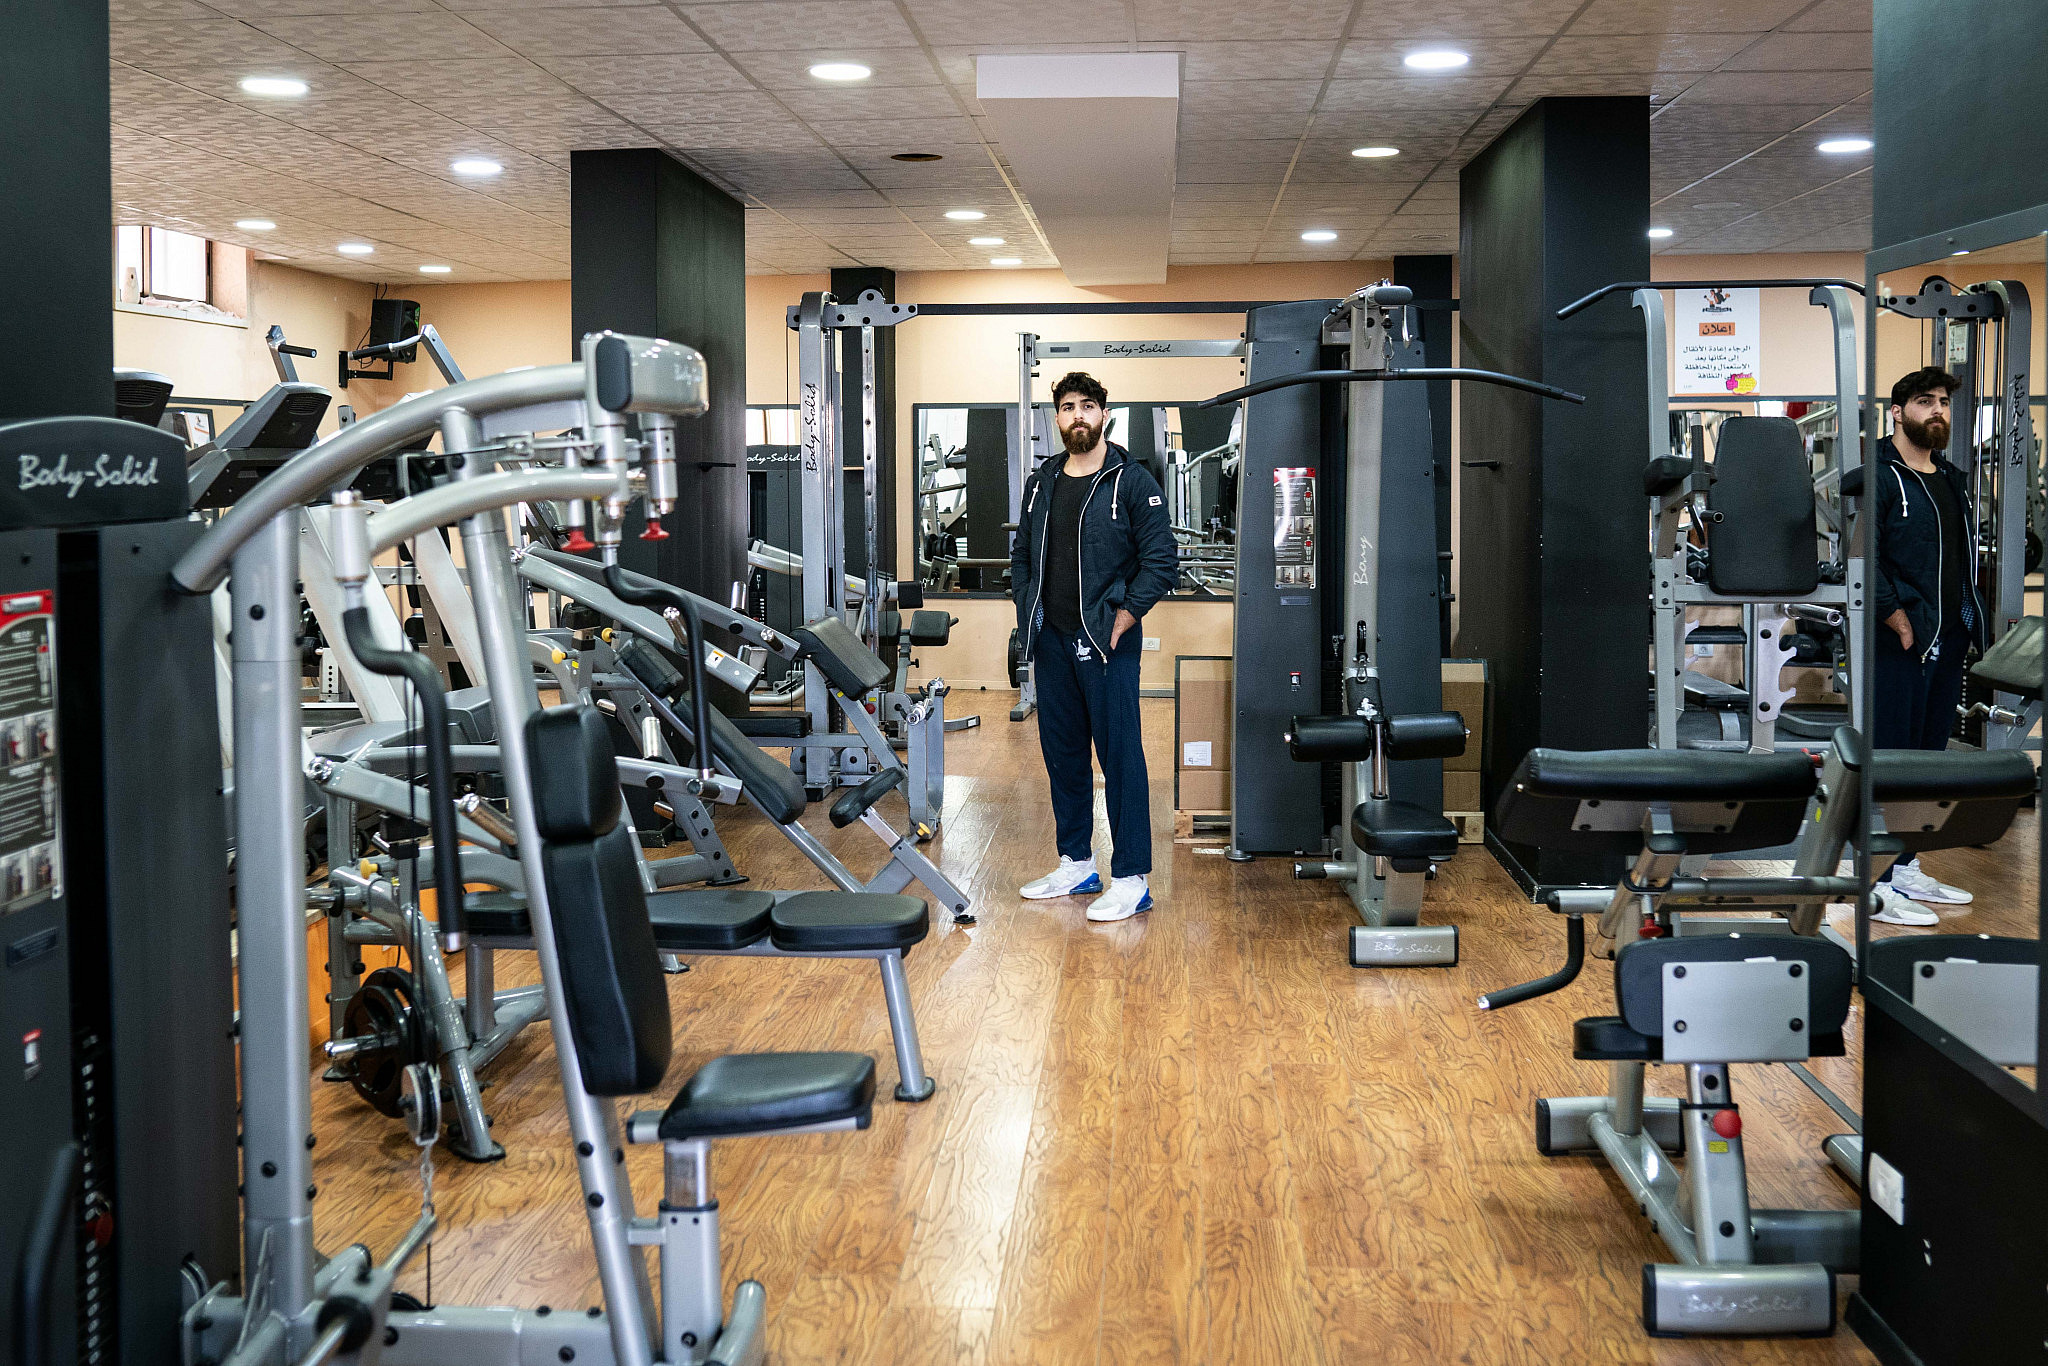 Nicholas Zeidan, a personal trainer, stands at his family's empty gym in Bethlehem, on March 10, 2020. (Samar Hazboun)